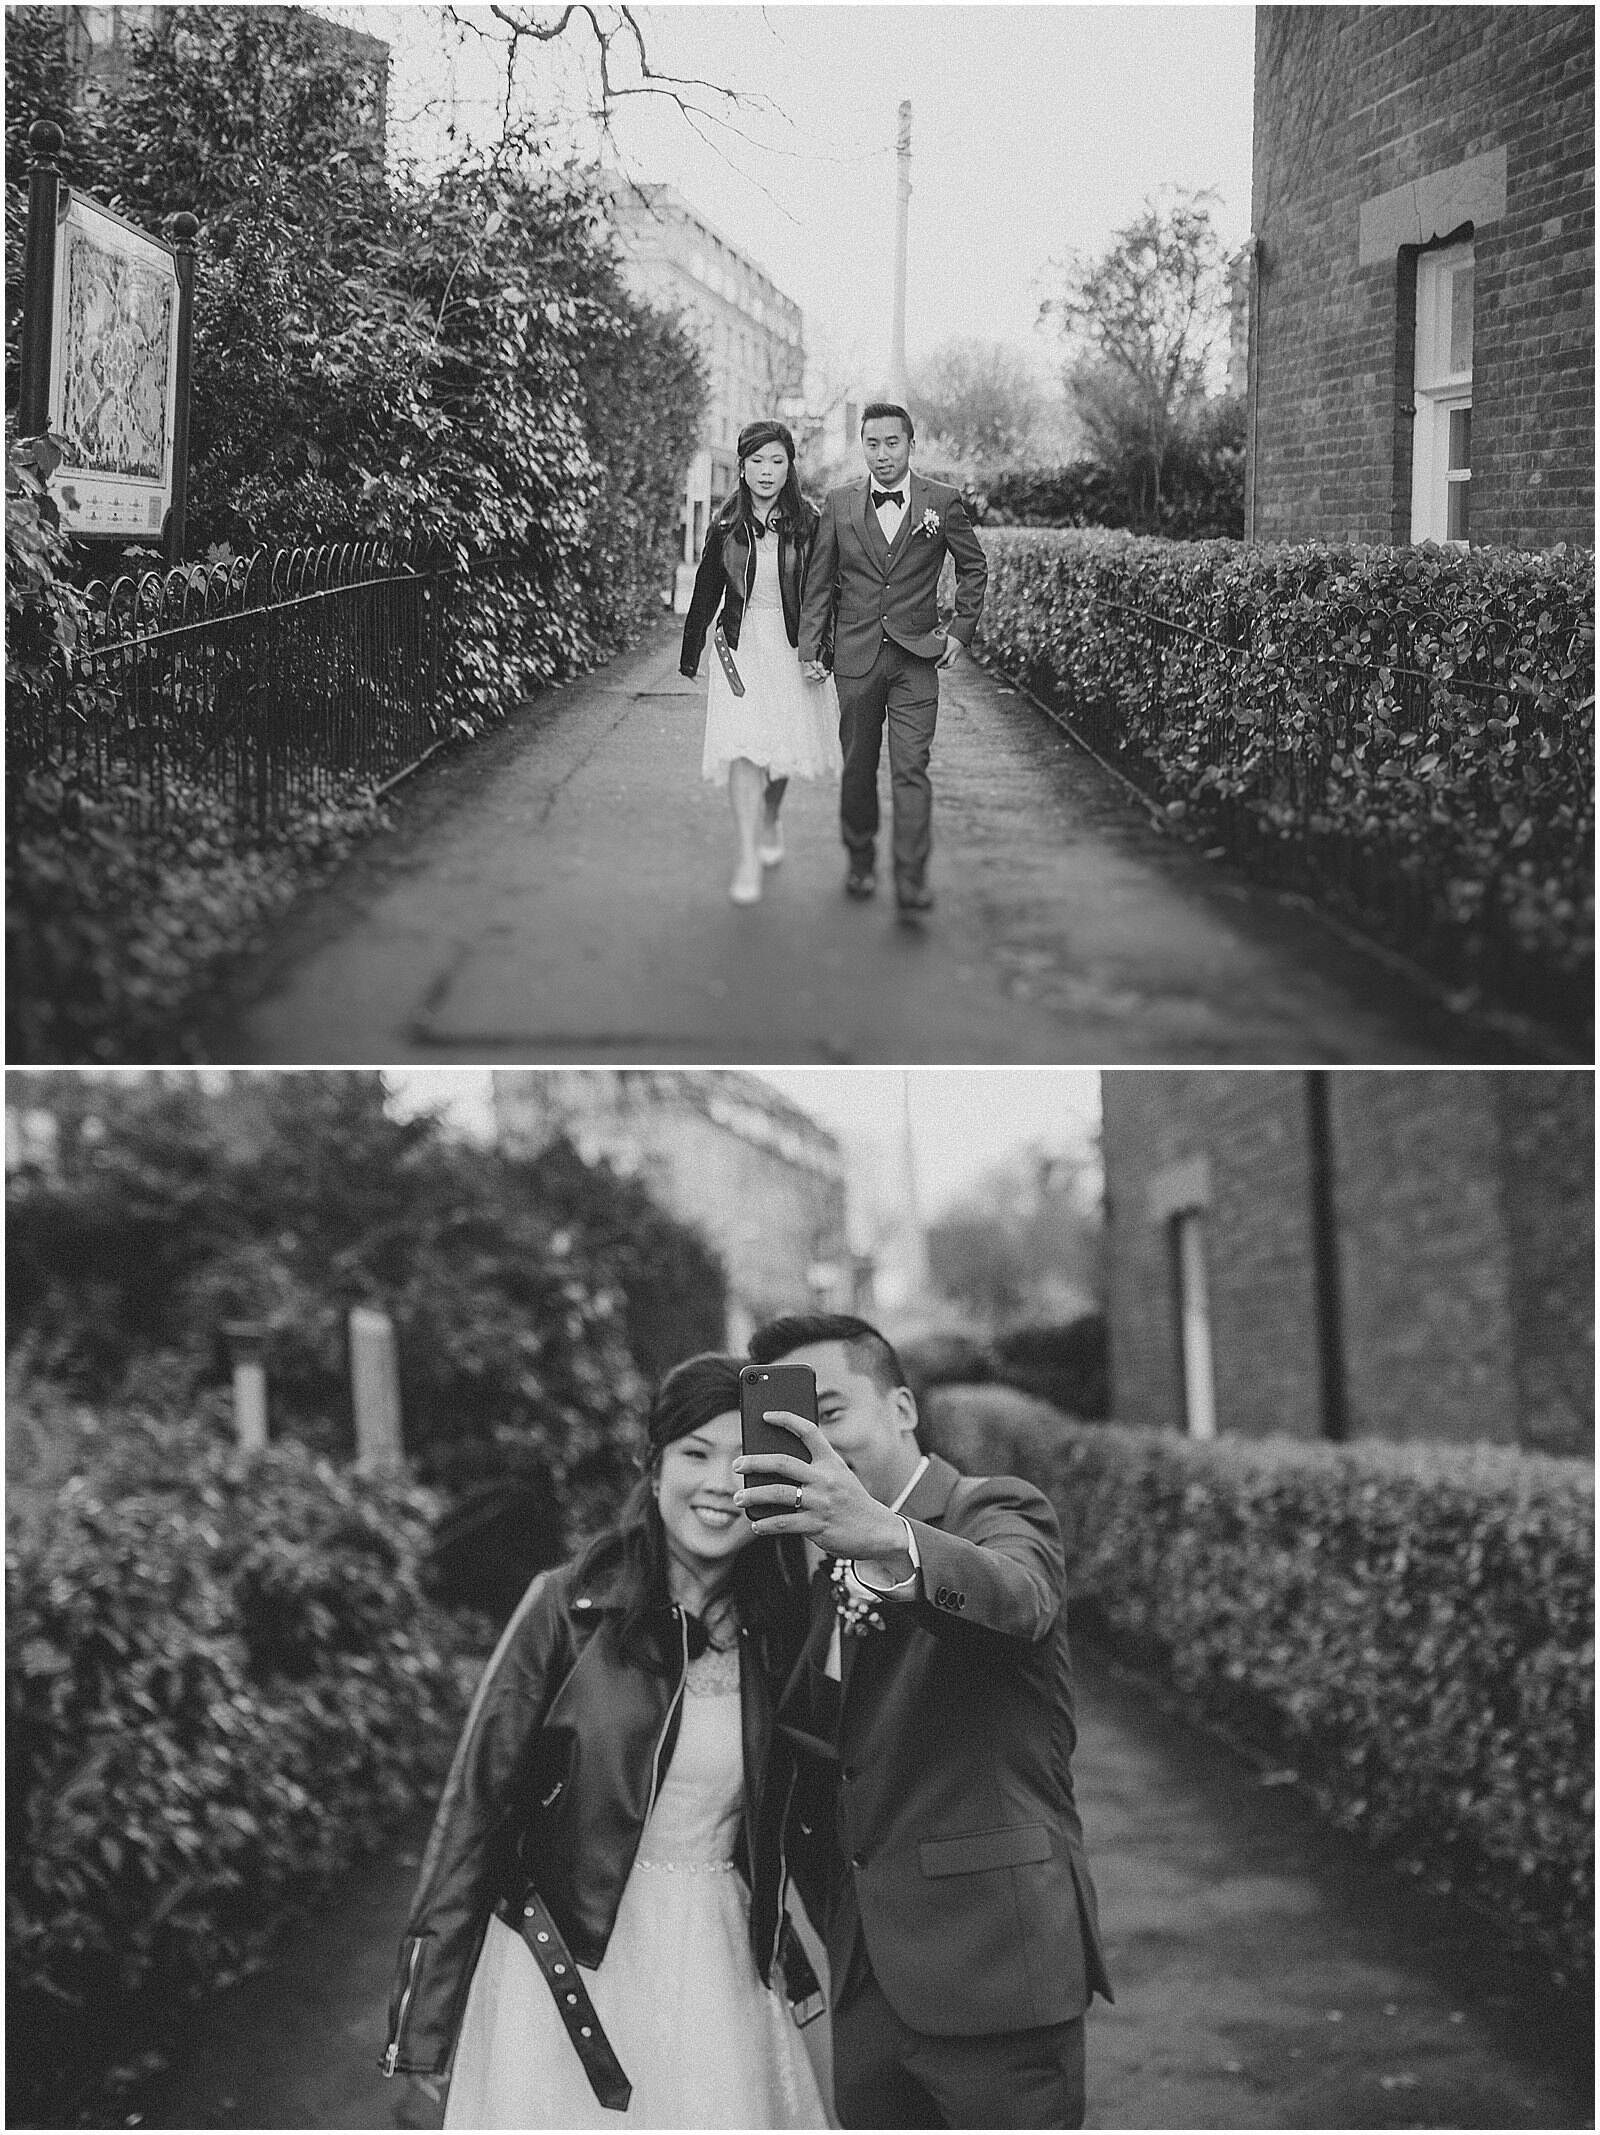 Sandy + Shekman - Elopement in Dublin City 21